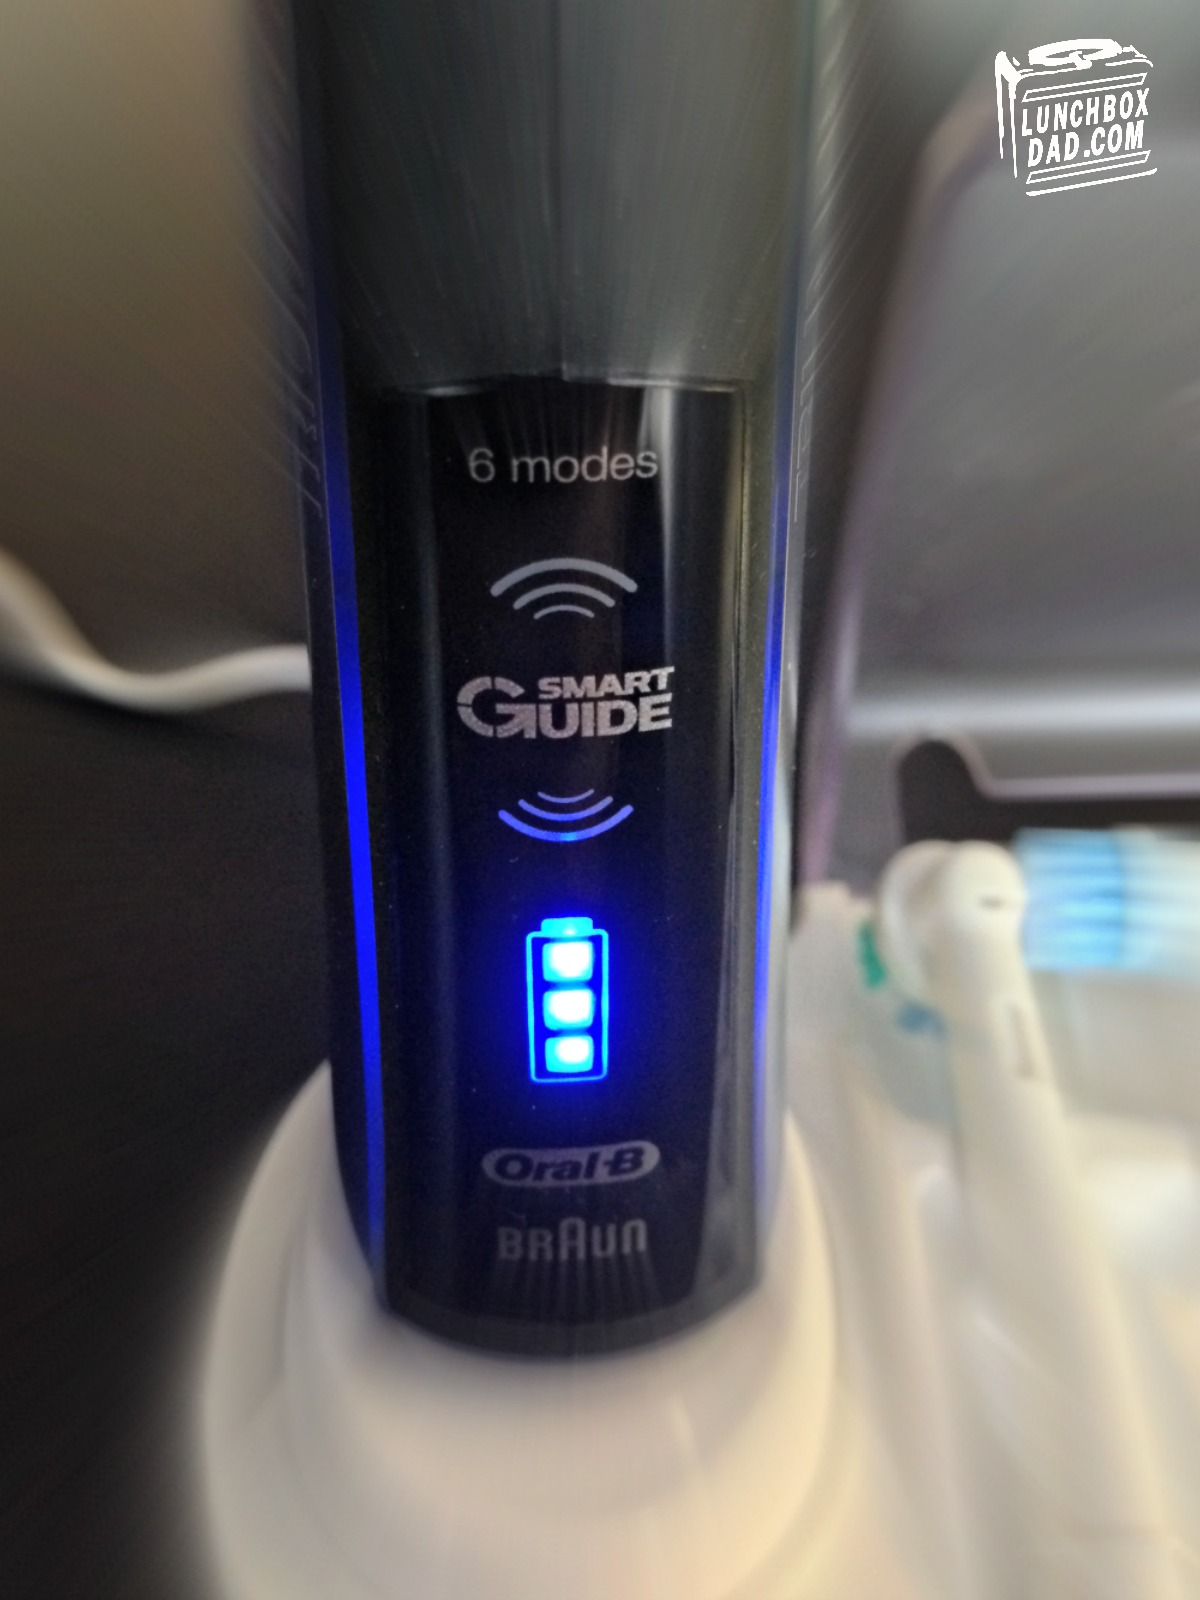 Oral-B Black 7000 Review #PowerofDad #shop